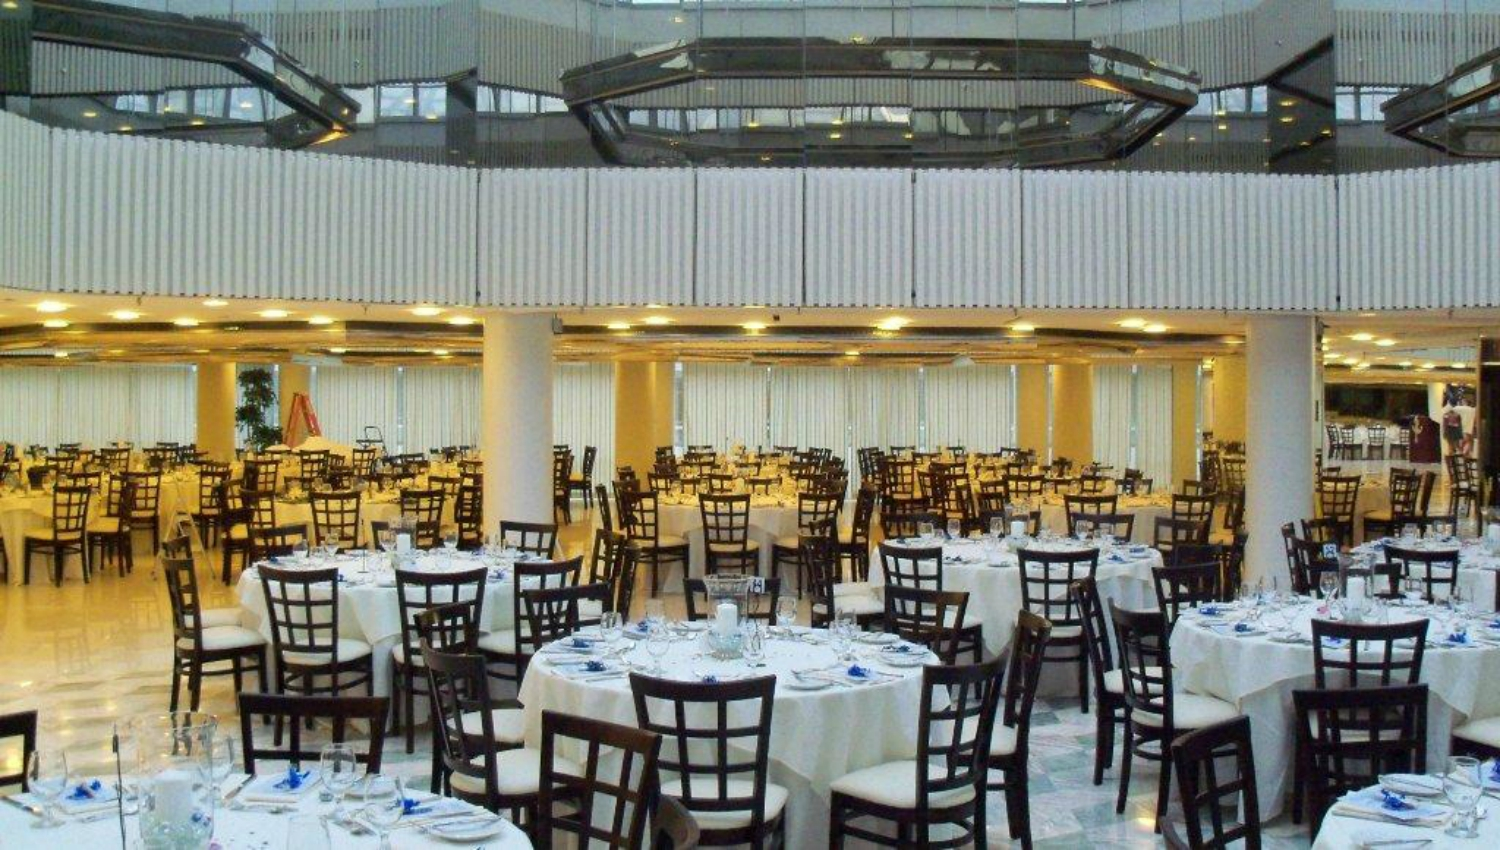 Multitude of white-clothed round tables and brown chairs in dining room